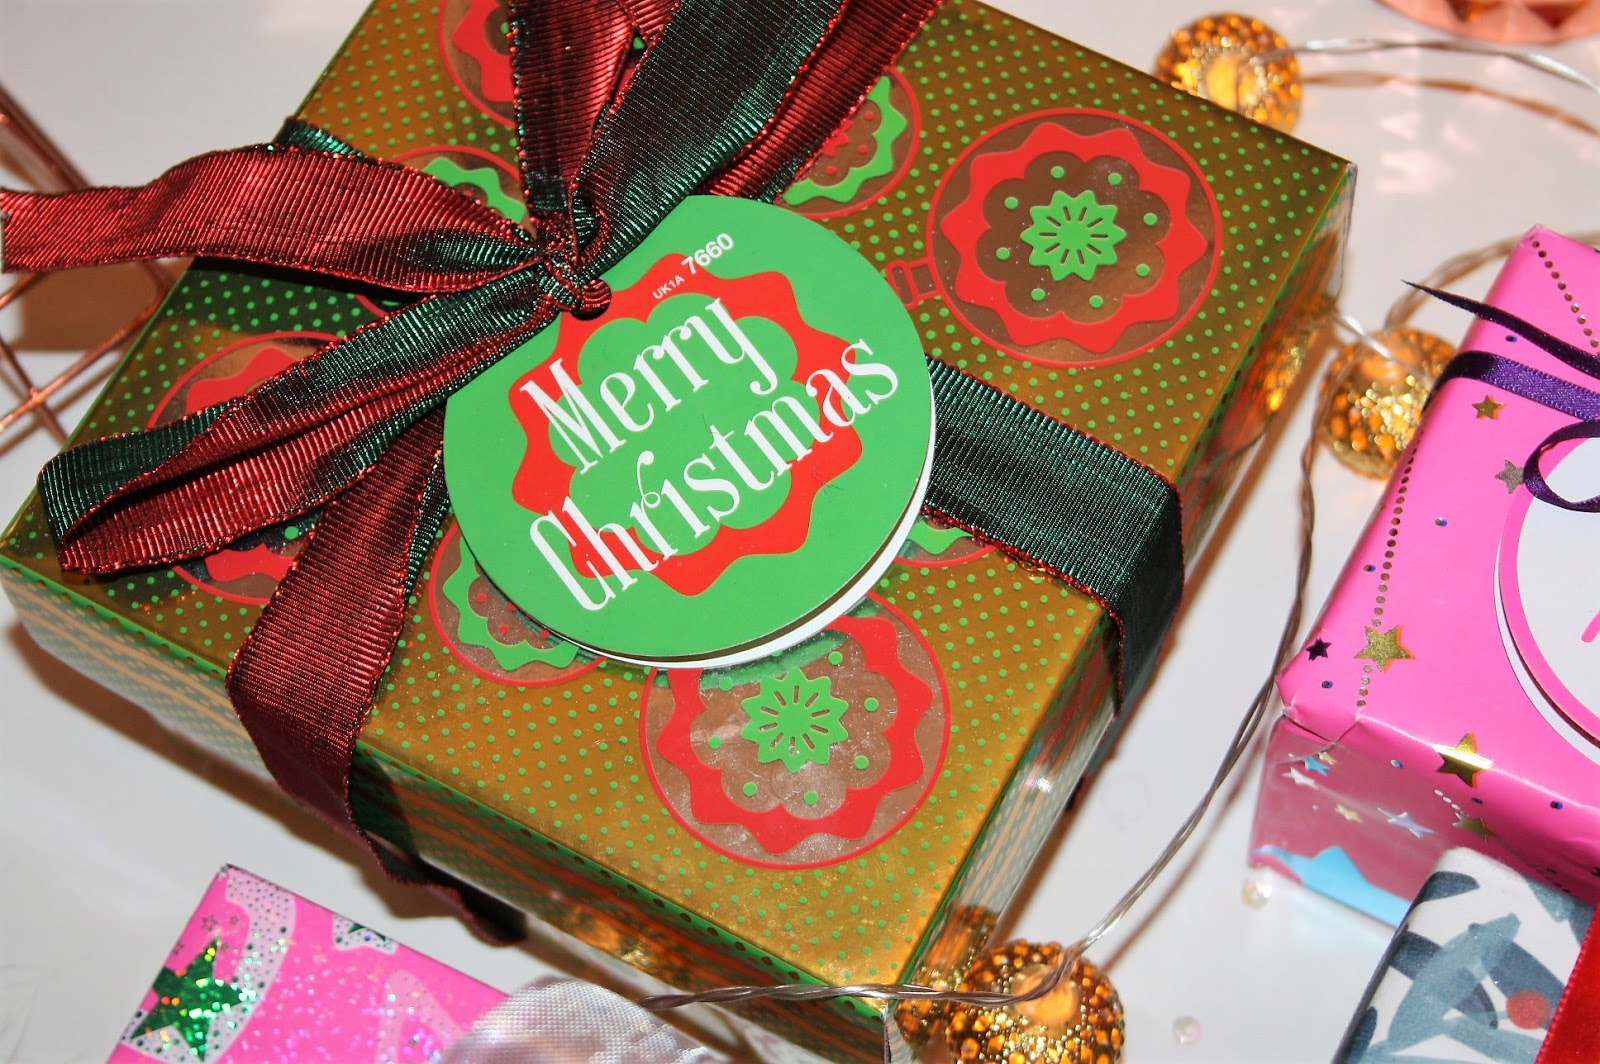 CHRISTMAS: CHRISTMAS GIFT IDEAS FROM LUSH - PRETTY YOUNG THING